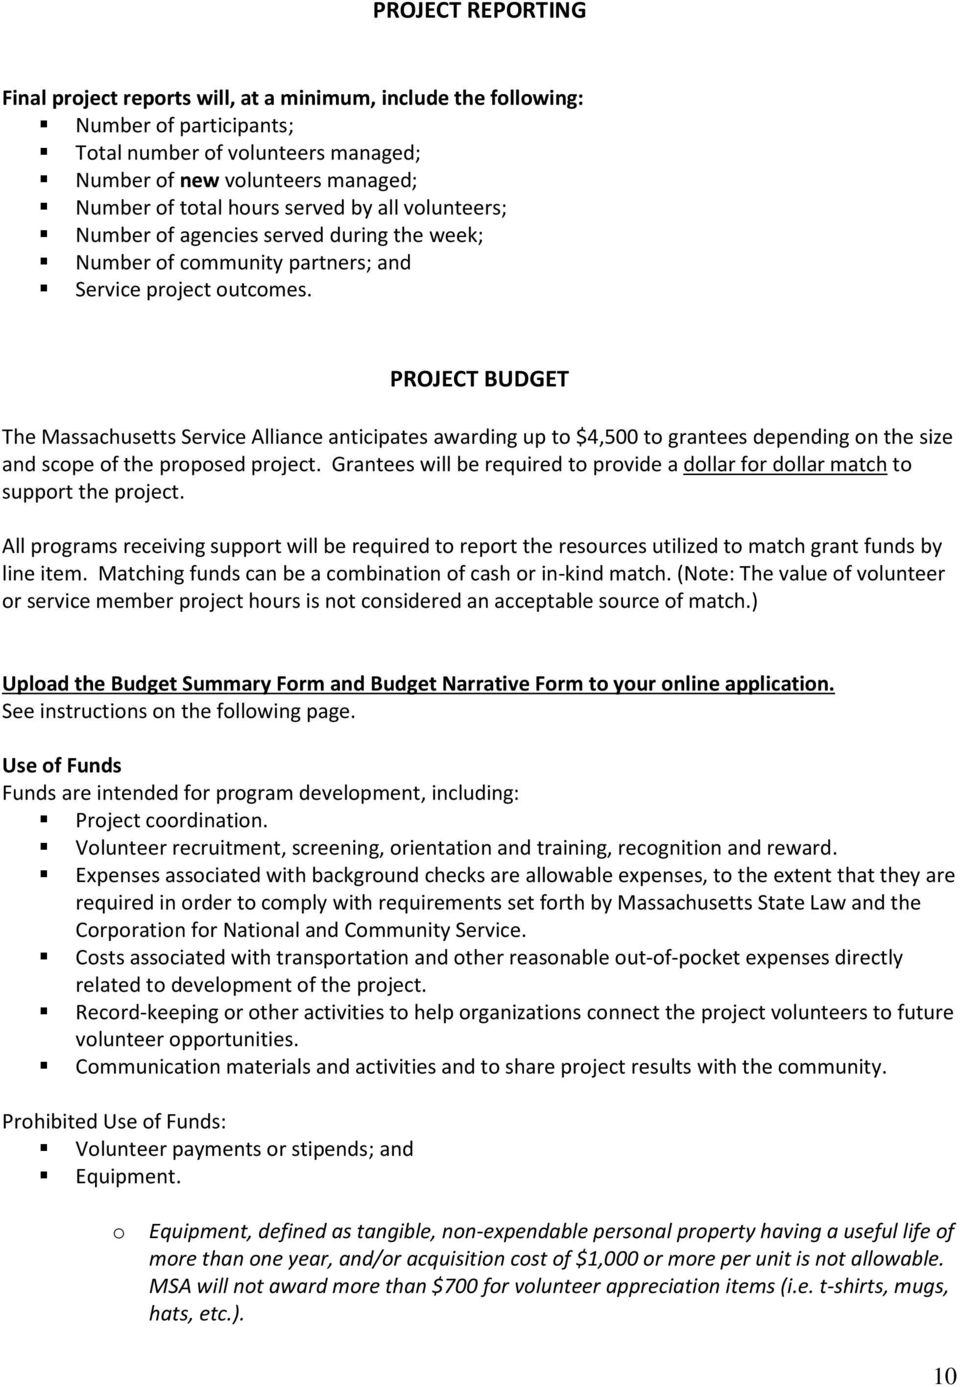 PROJECT BUDGET The Massachusetts Service Alliance anticipates awarding up to $4,500 to grantees depending on the size and scope of the proposed project.